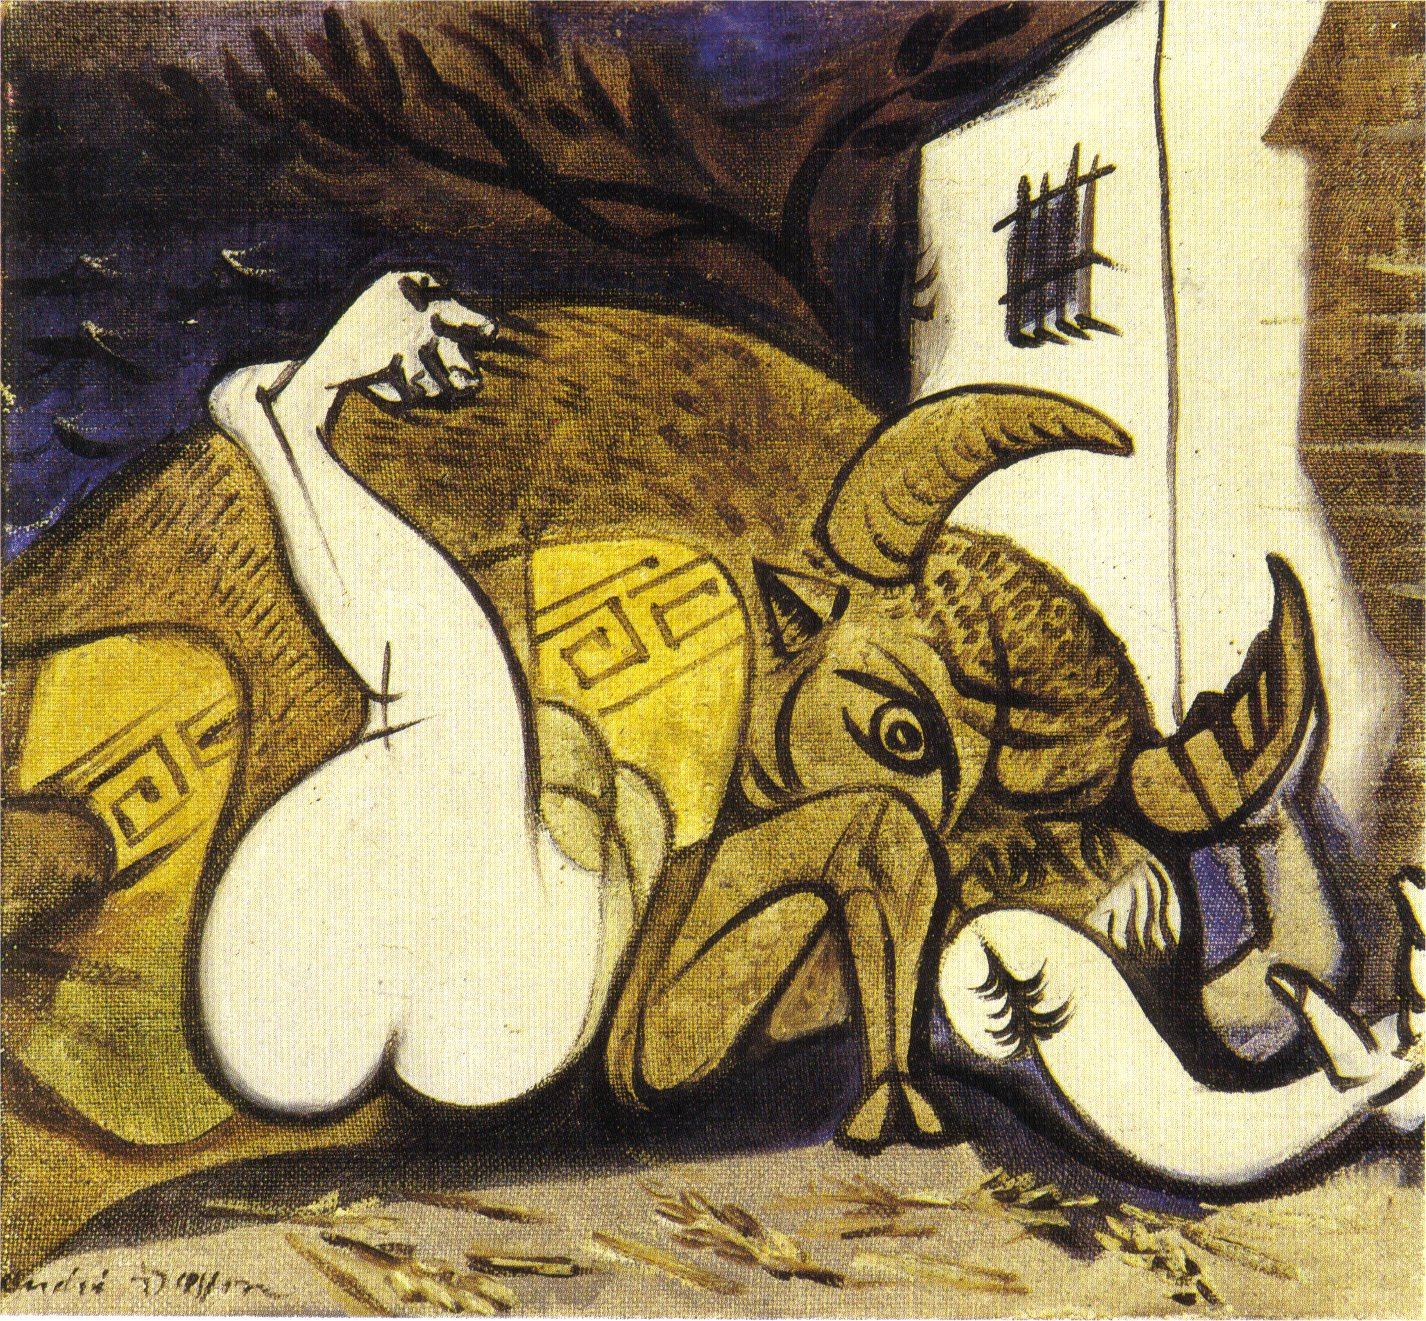 Cartoons minotaur xxx sex sexual photo